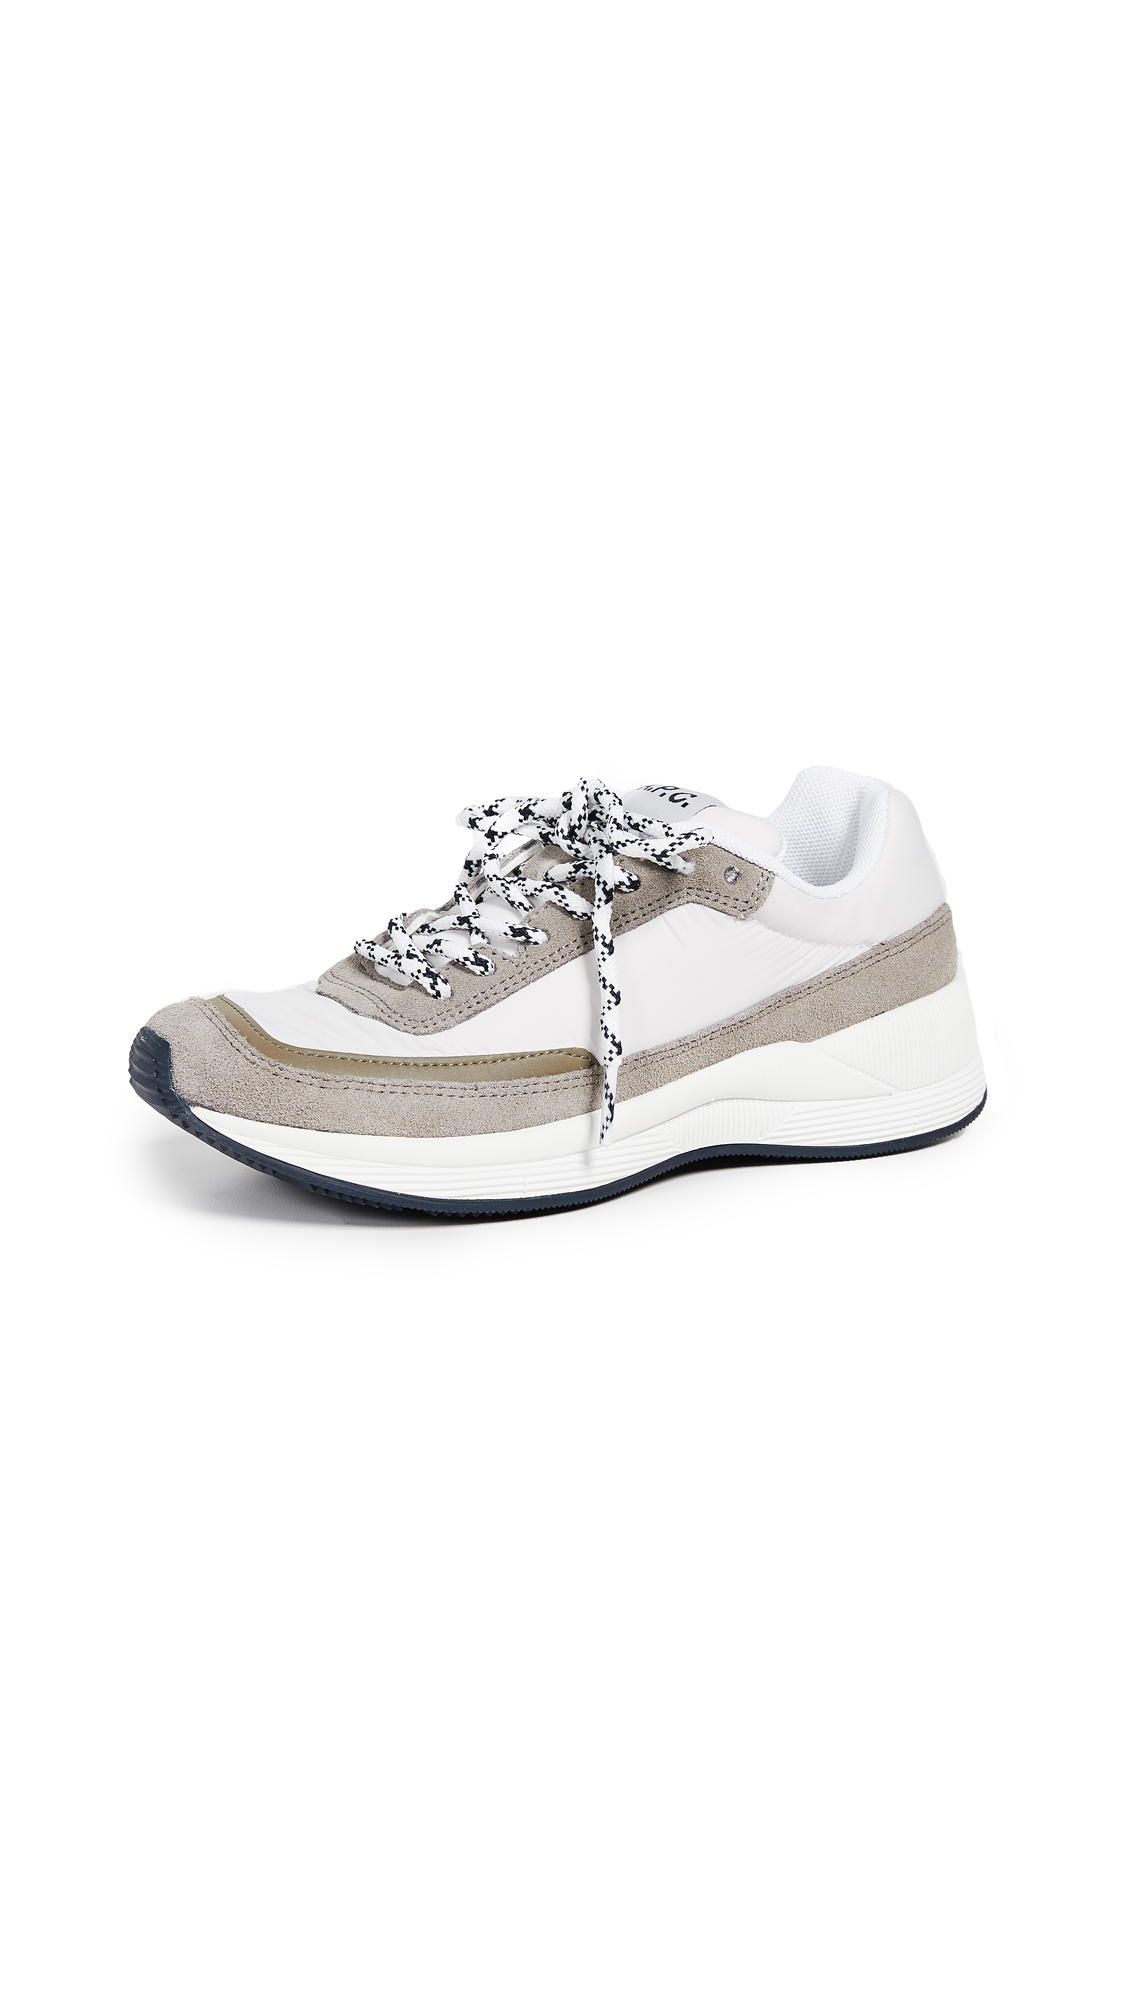 A.P.C. Femme Running Sneakers - Blanc